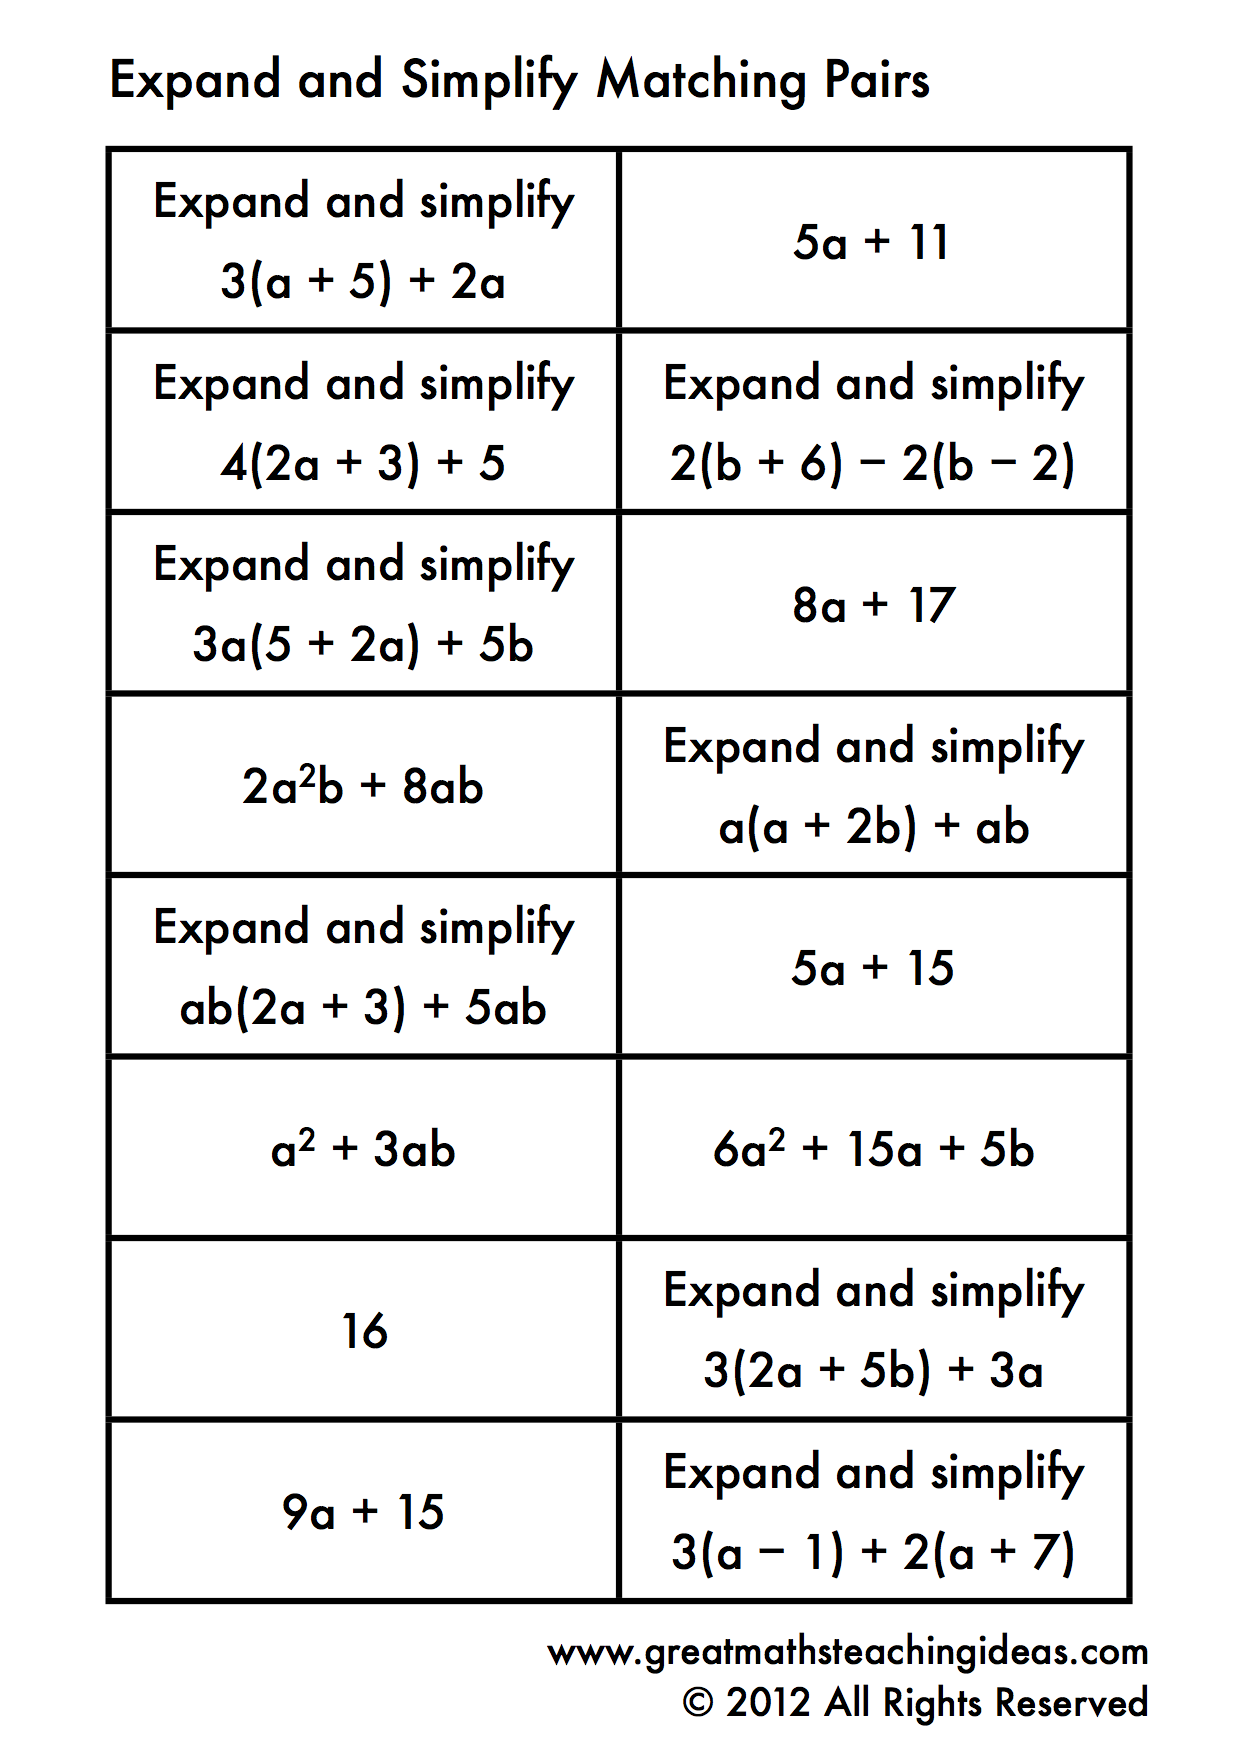 Expand And Simplify Single Brackets- Matching Pairs